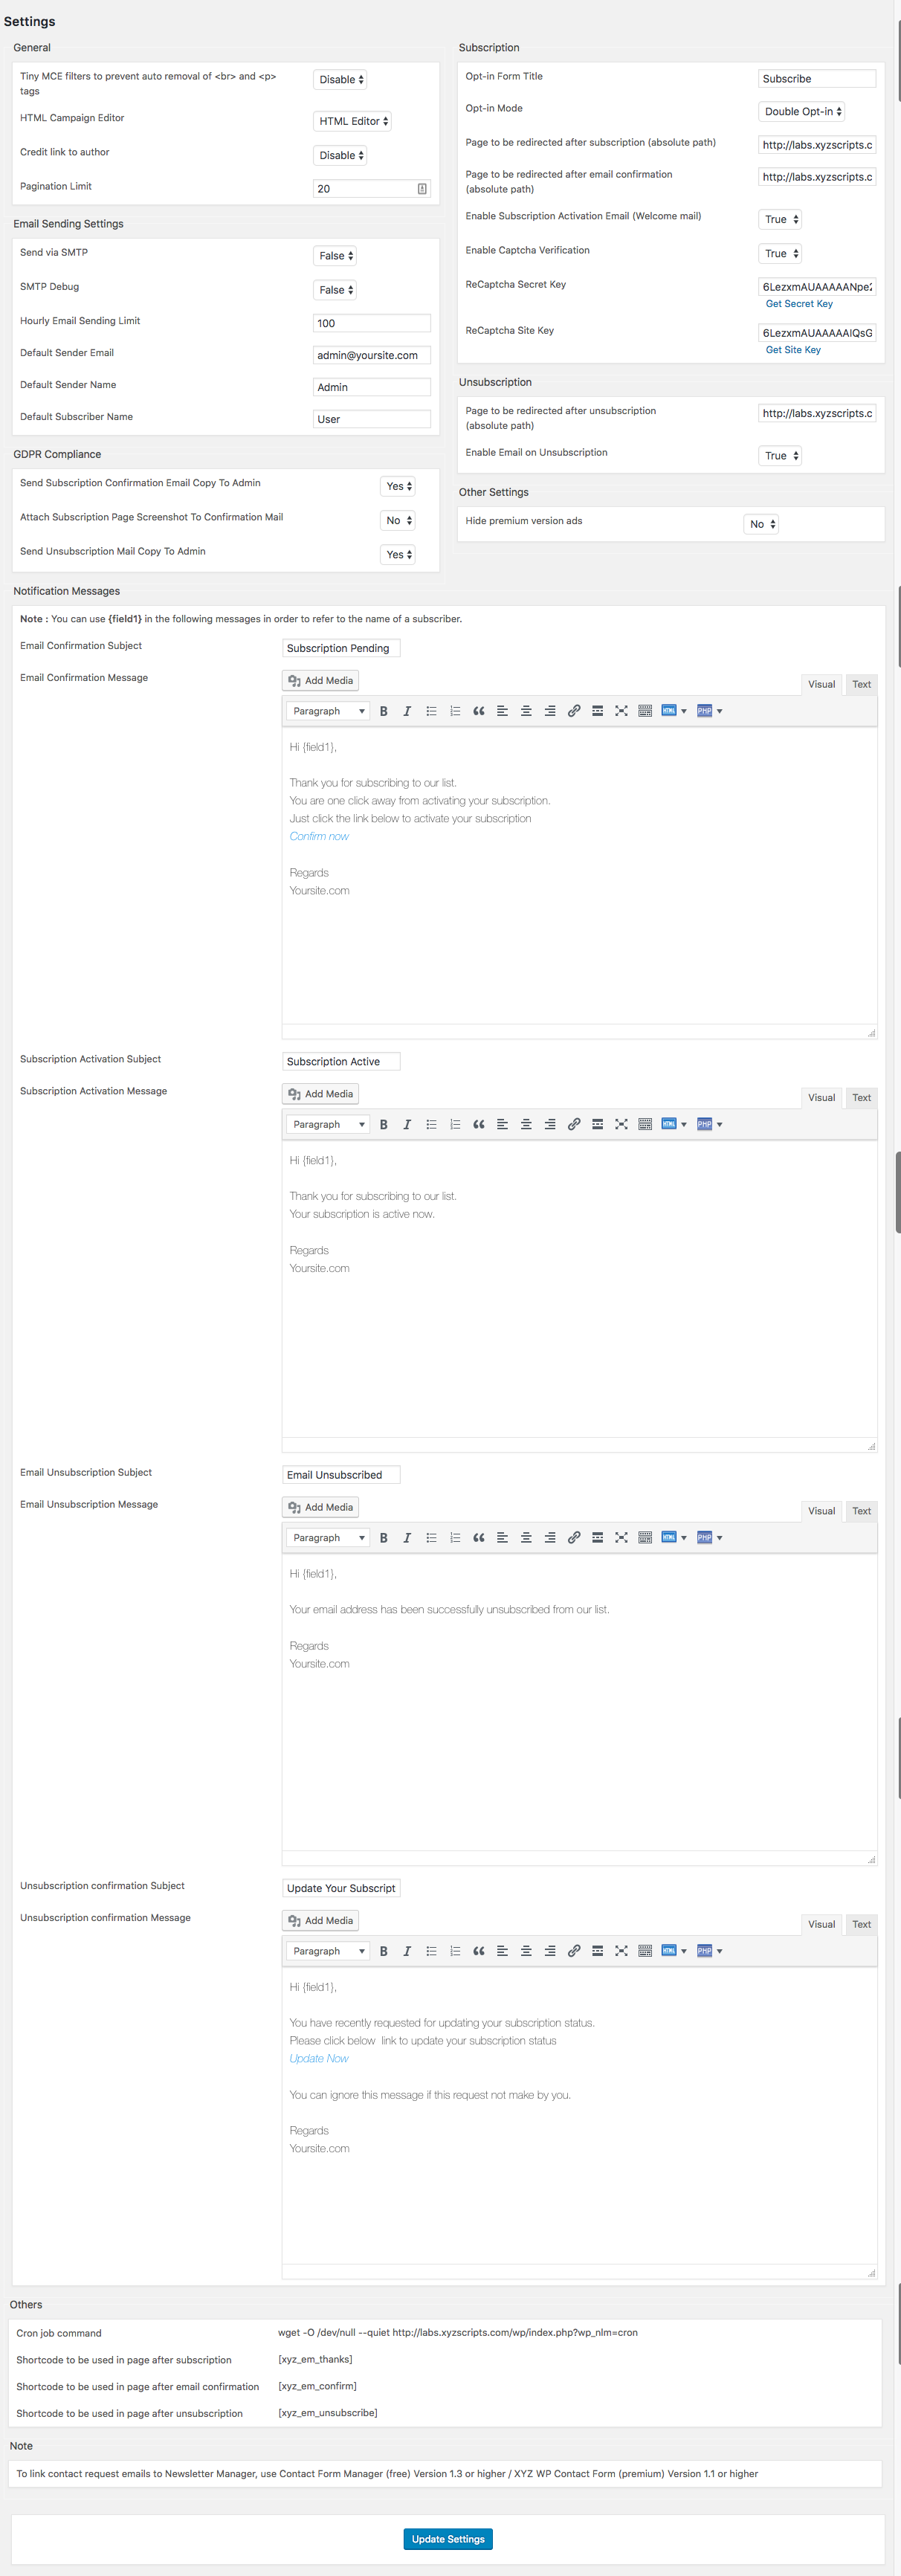 This is the configuration page where you can modify all the settings related to Newsletter Manager.